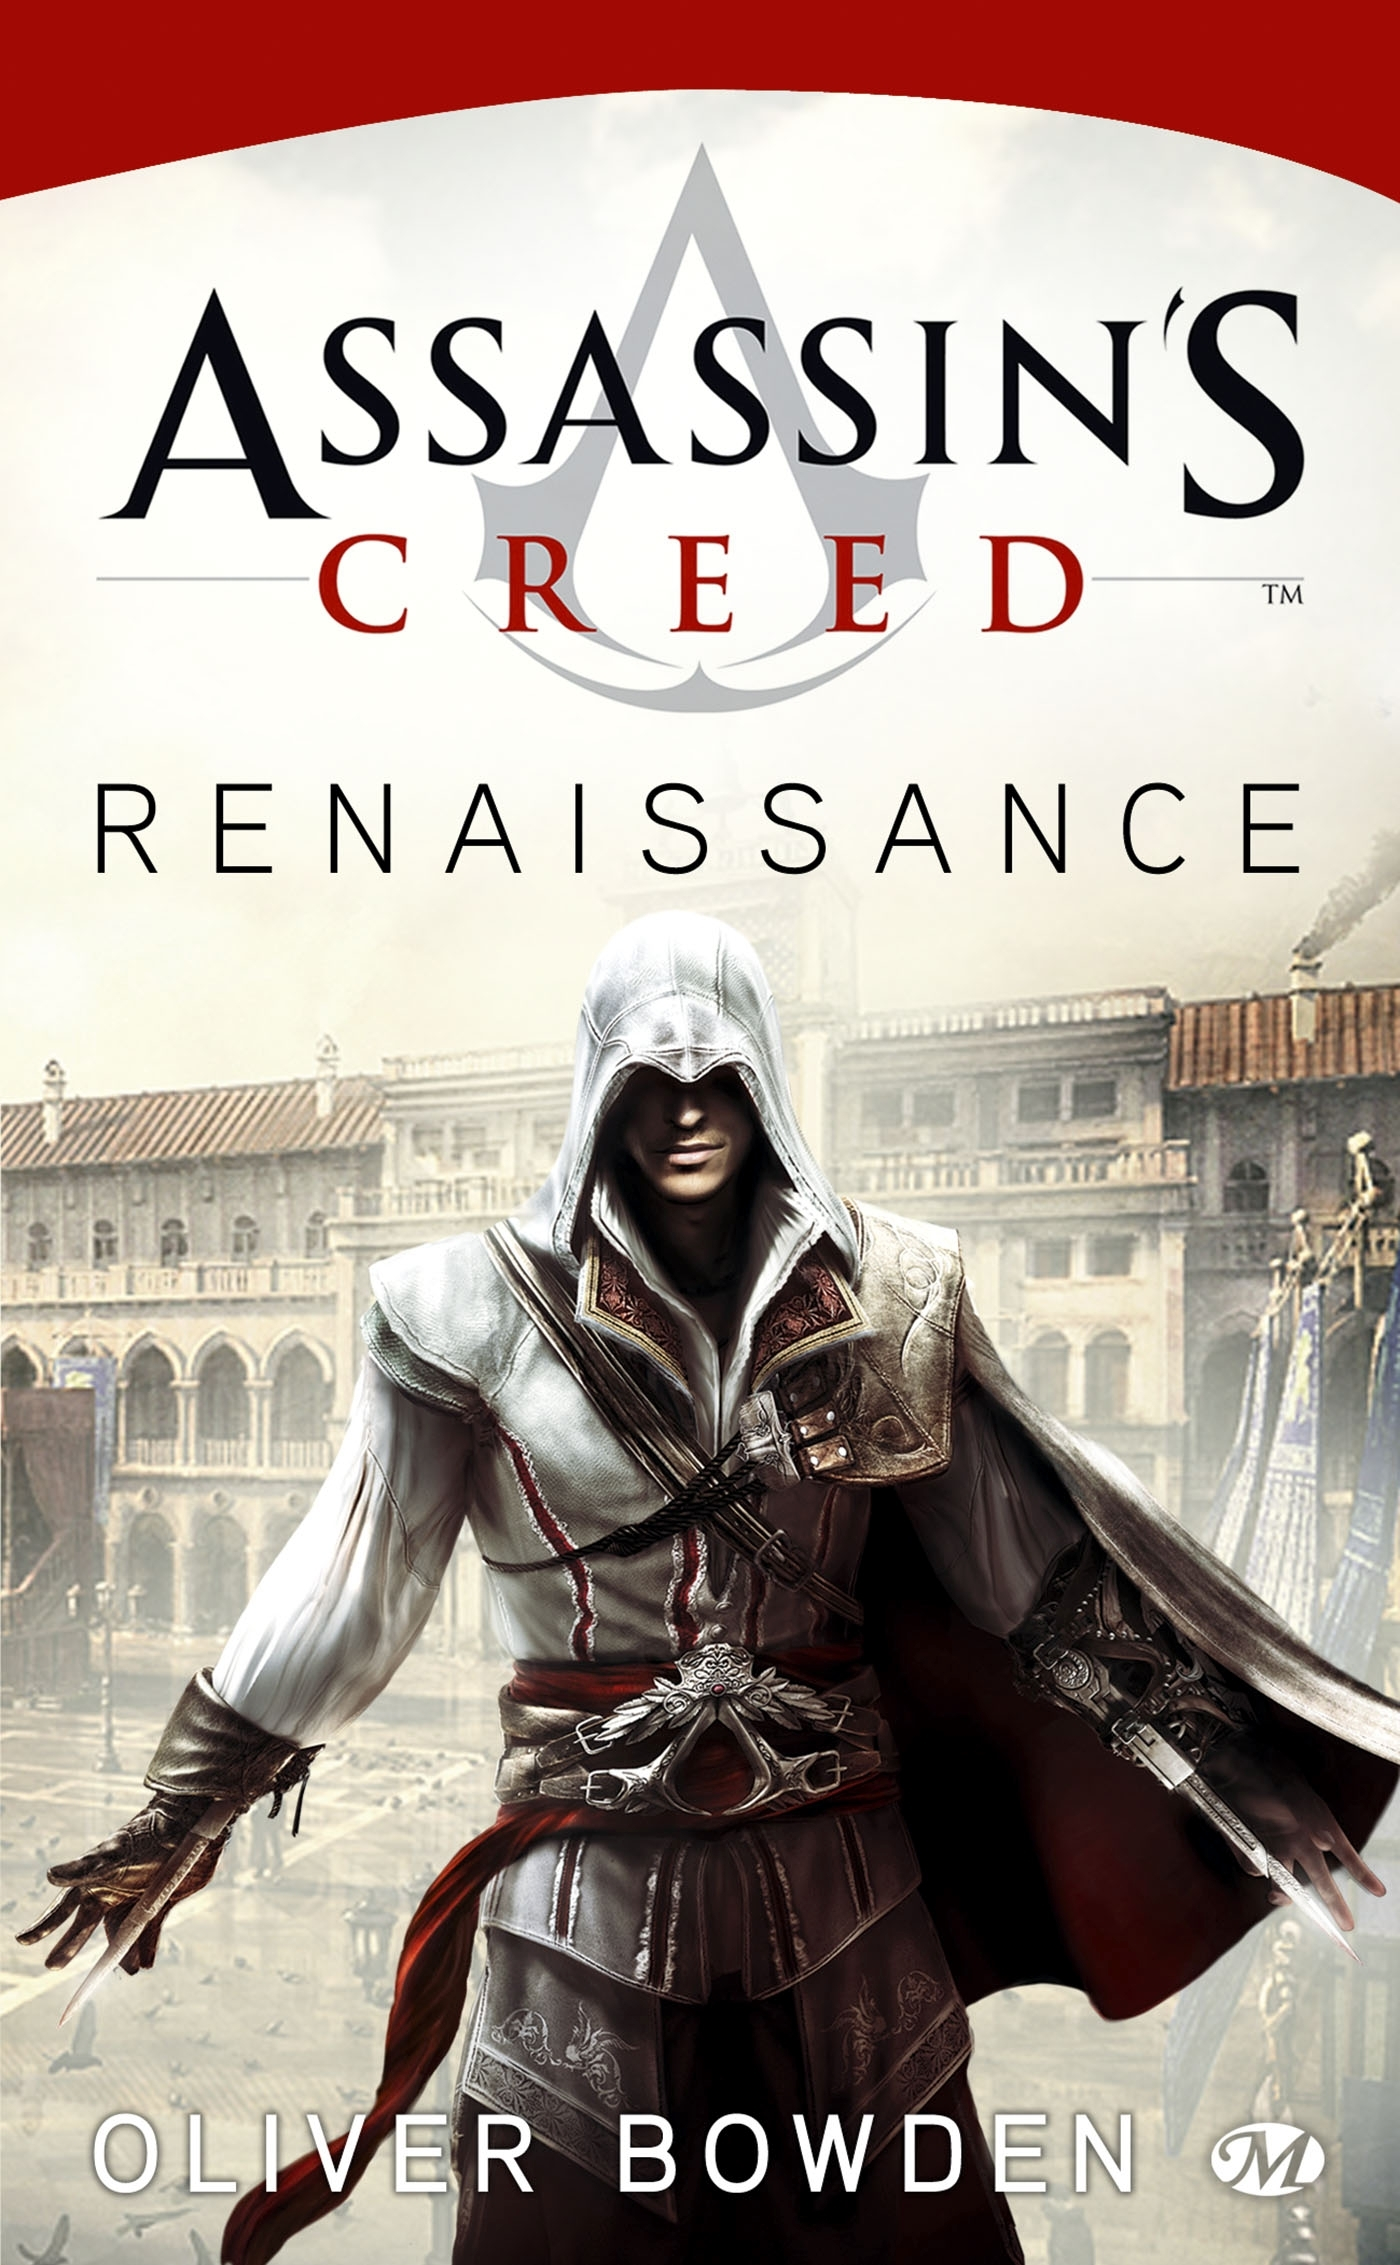 ASSASSIN'S CREED, T1 : ASSASSIN'S CREED : RENAISSANCE